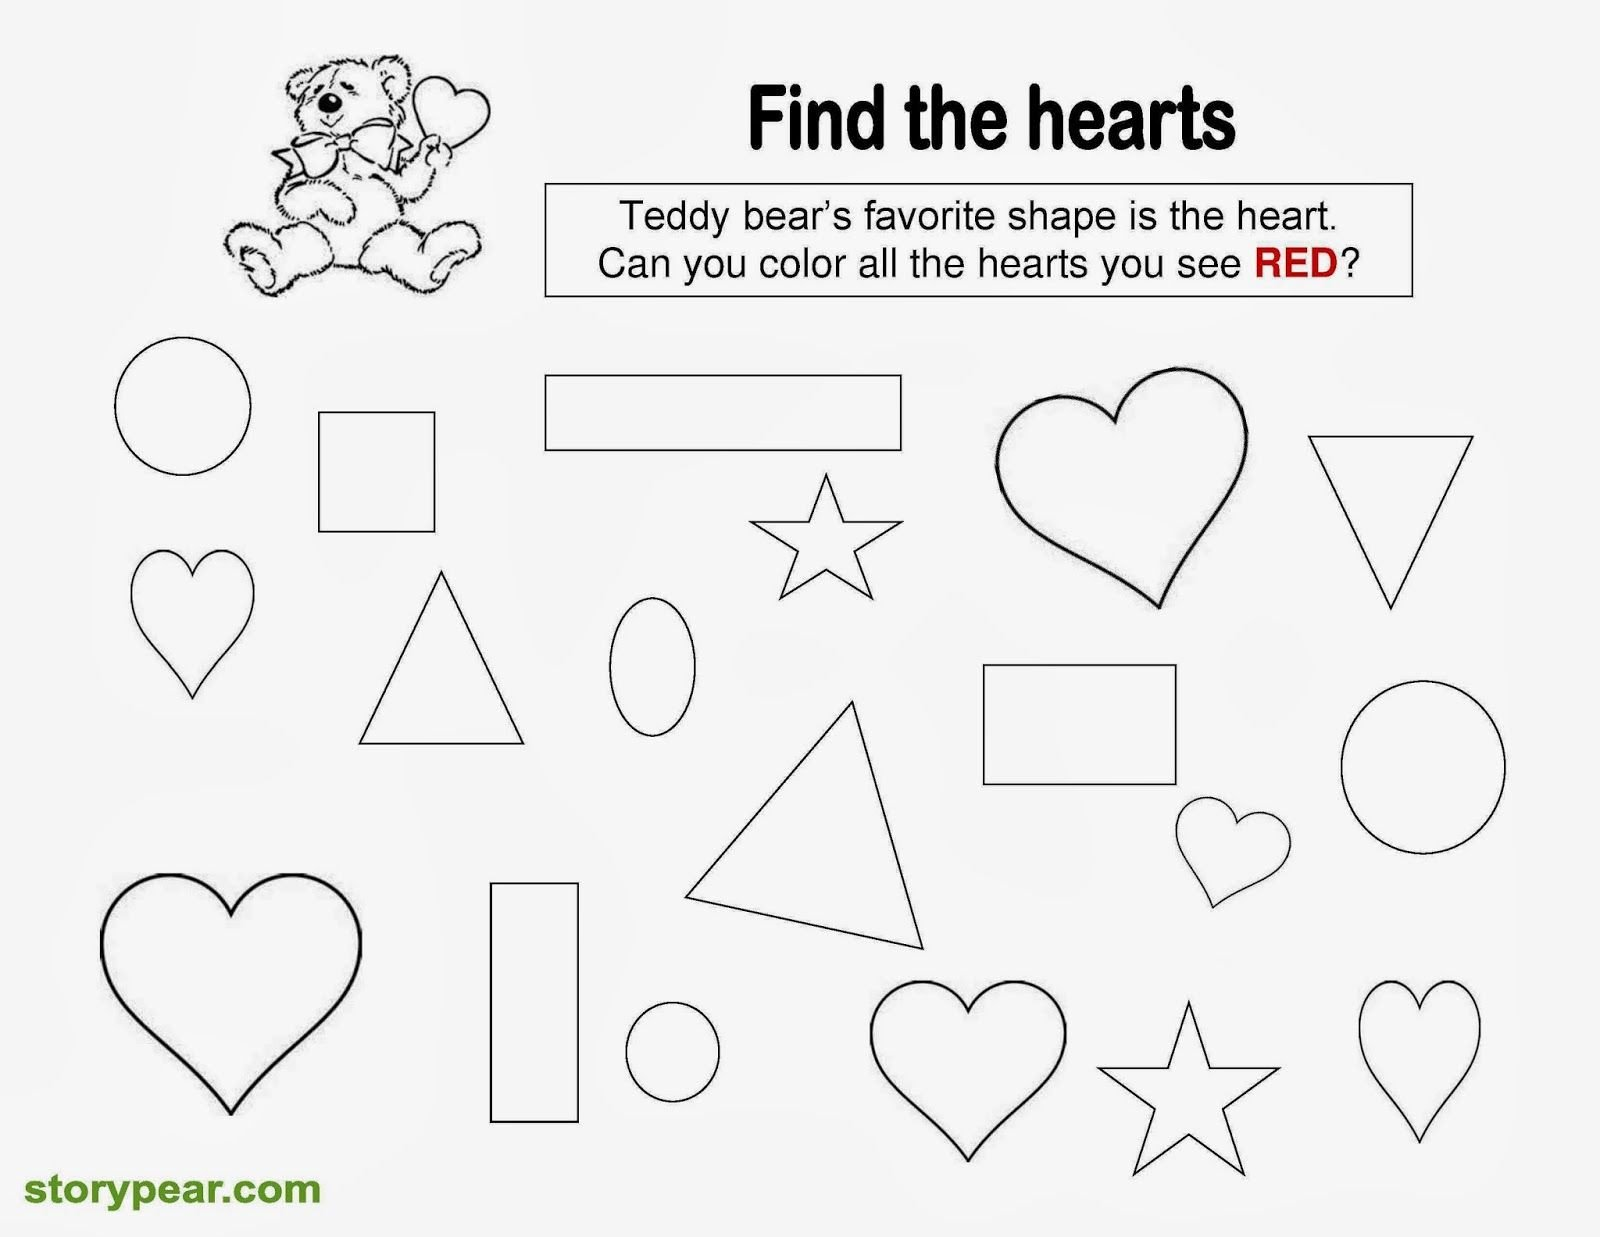 story pear free valentine days printable sheets for preschoolers